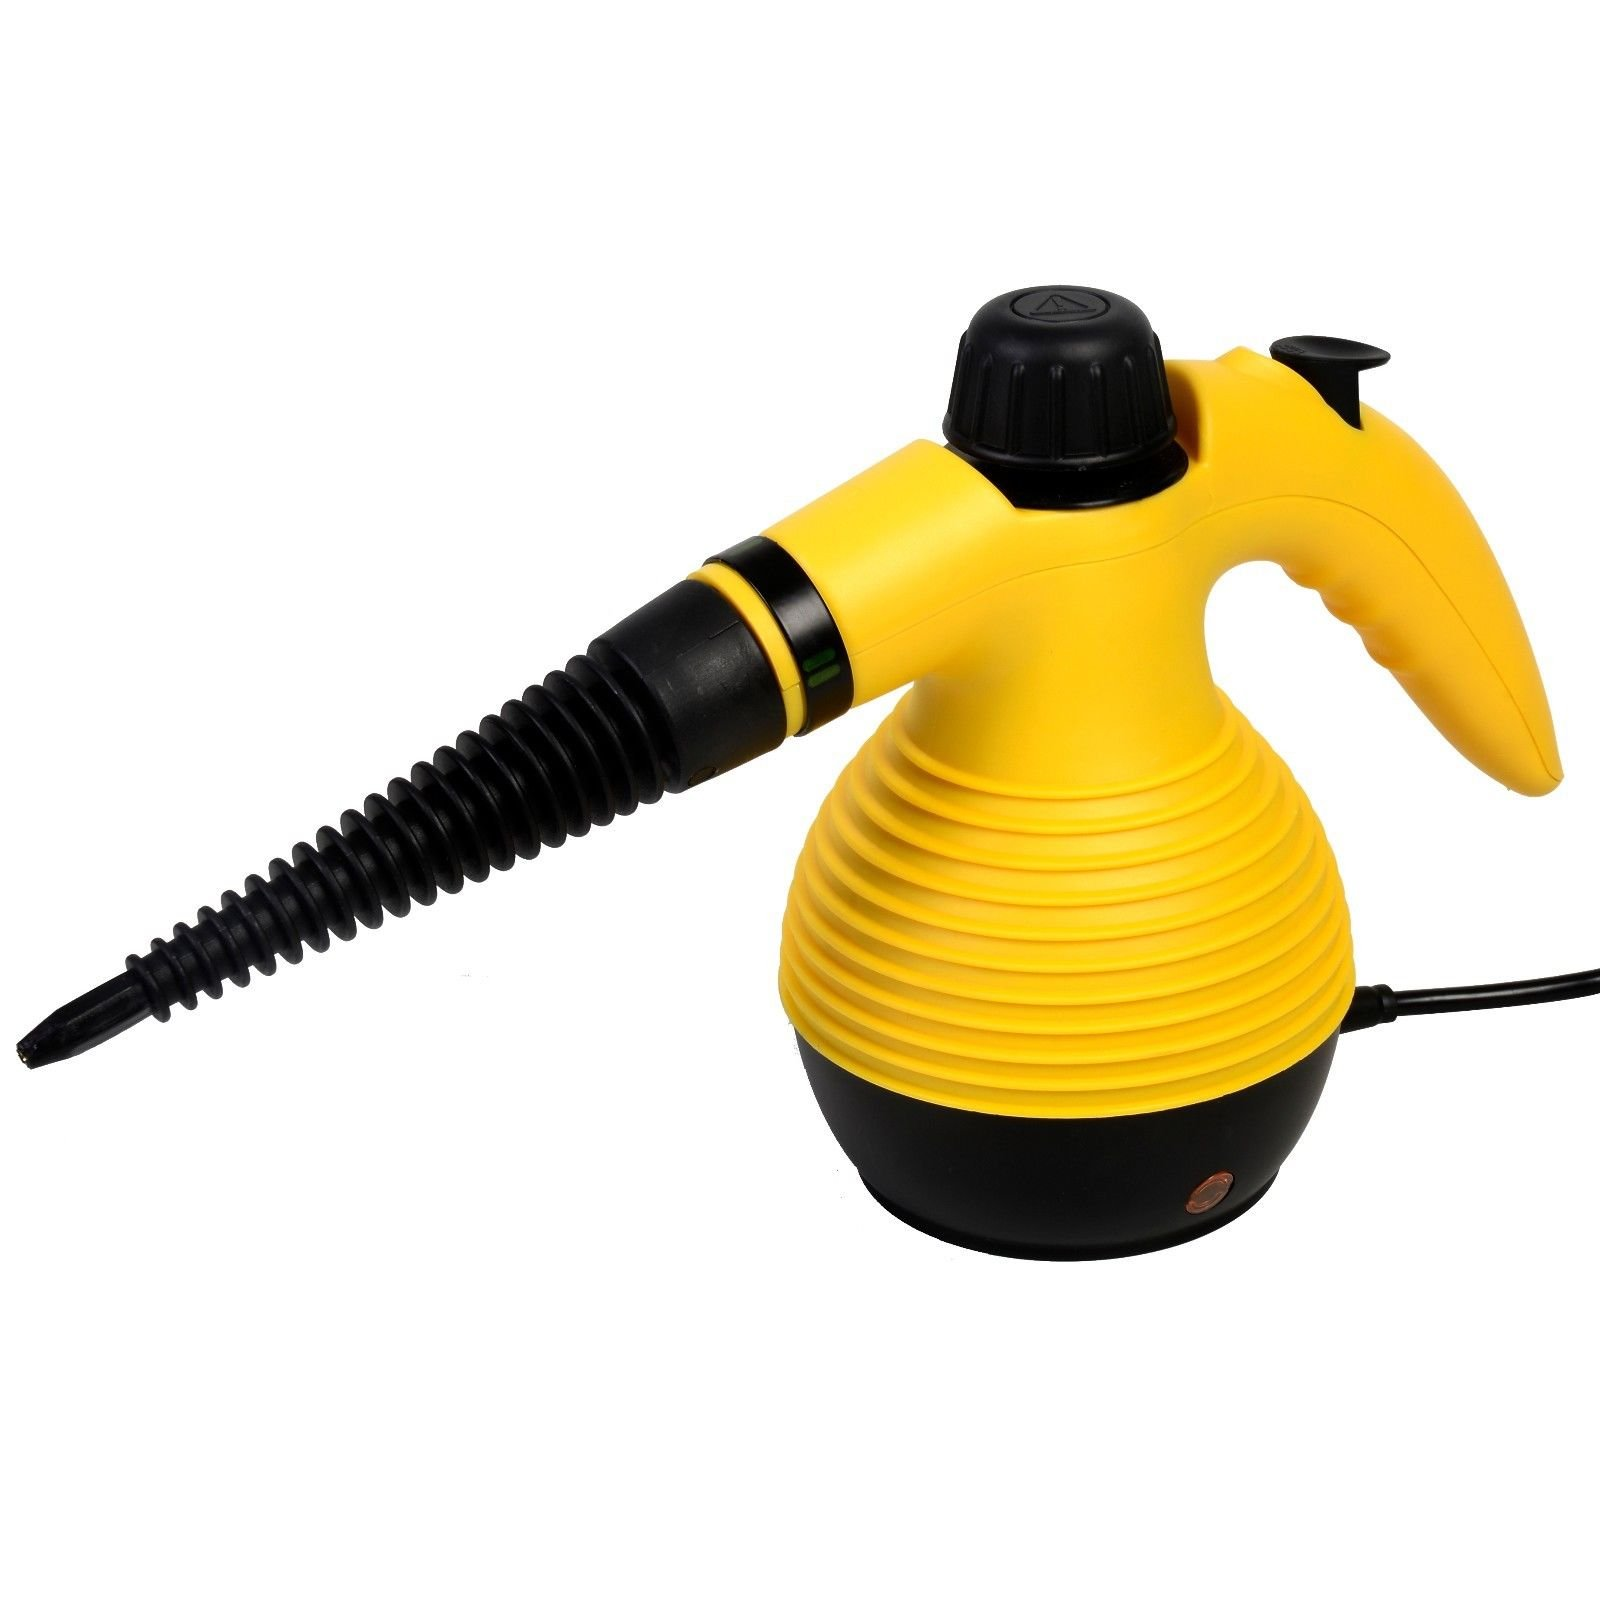 Wowdeal US Multi Purpose Handheld Steam Cleaner 1050W Portable Steamer W/Attachments